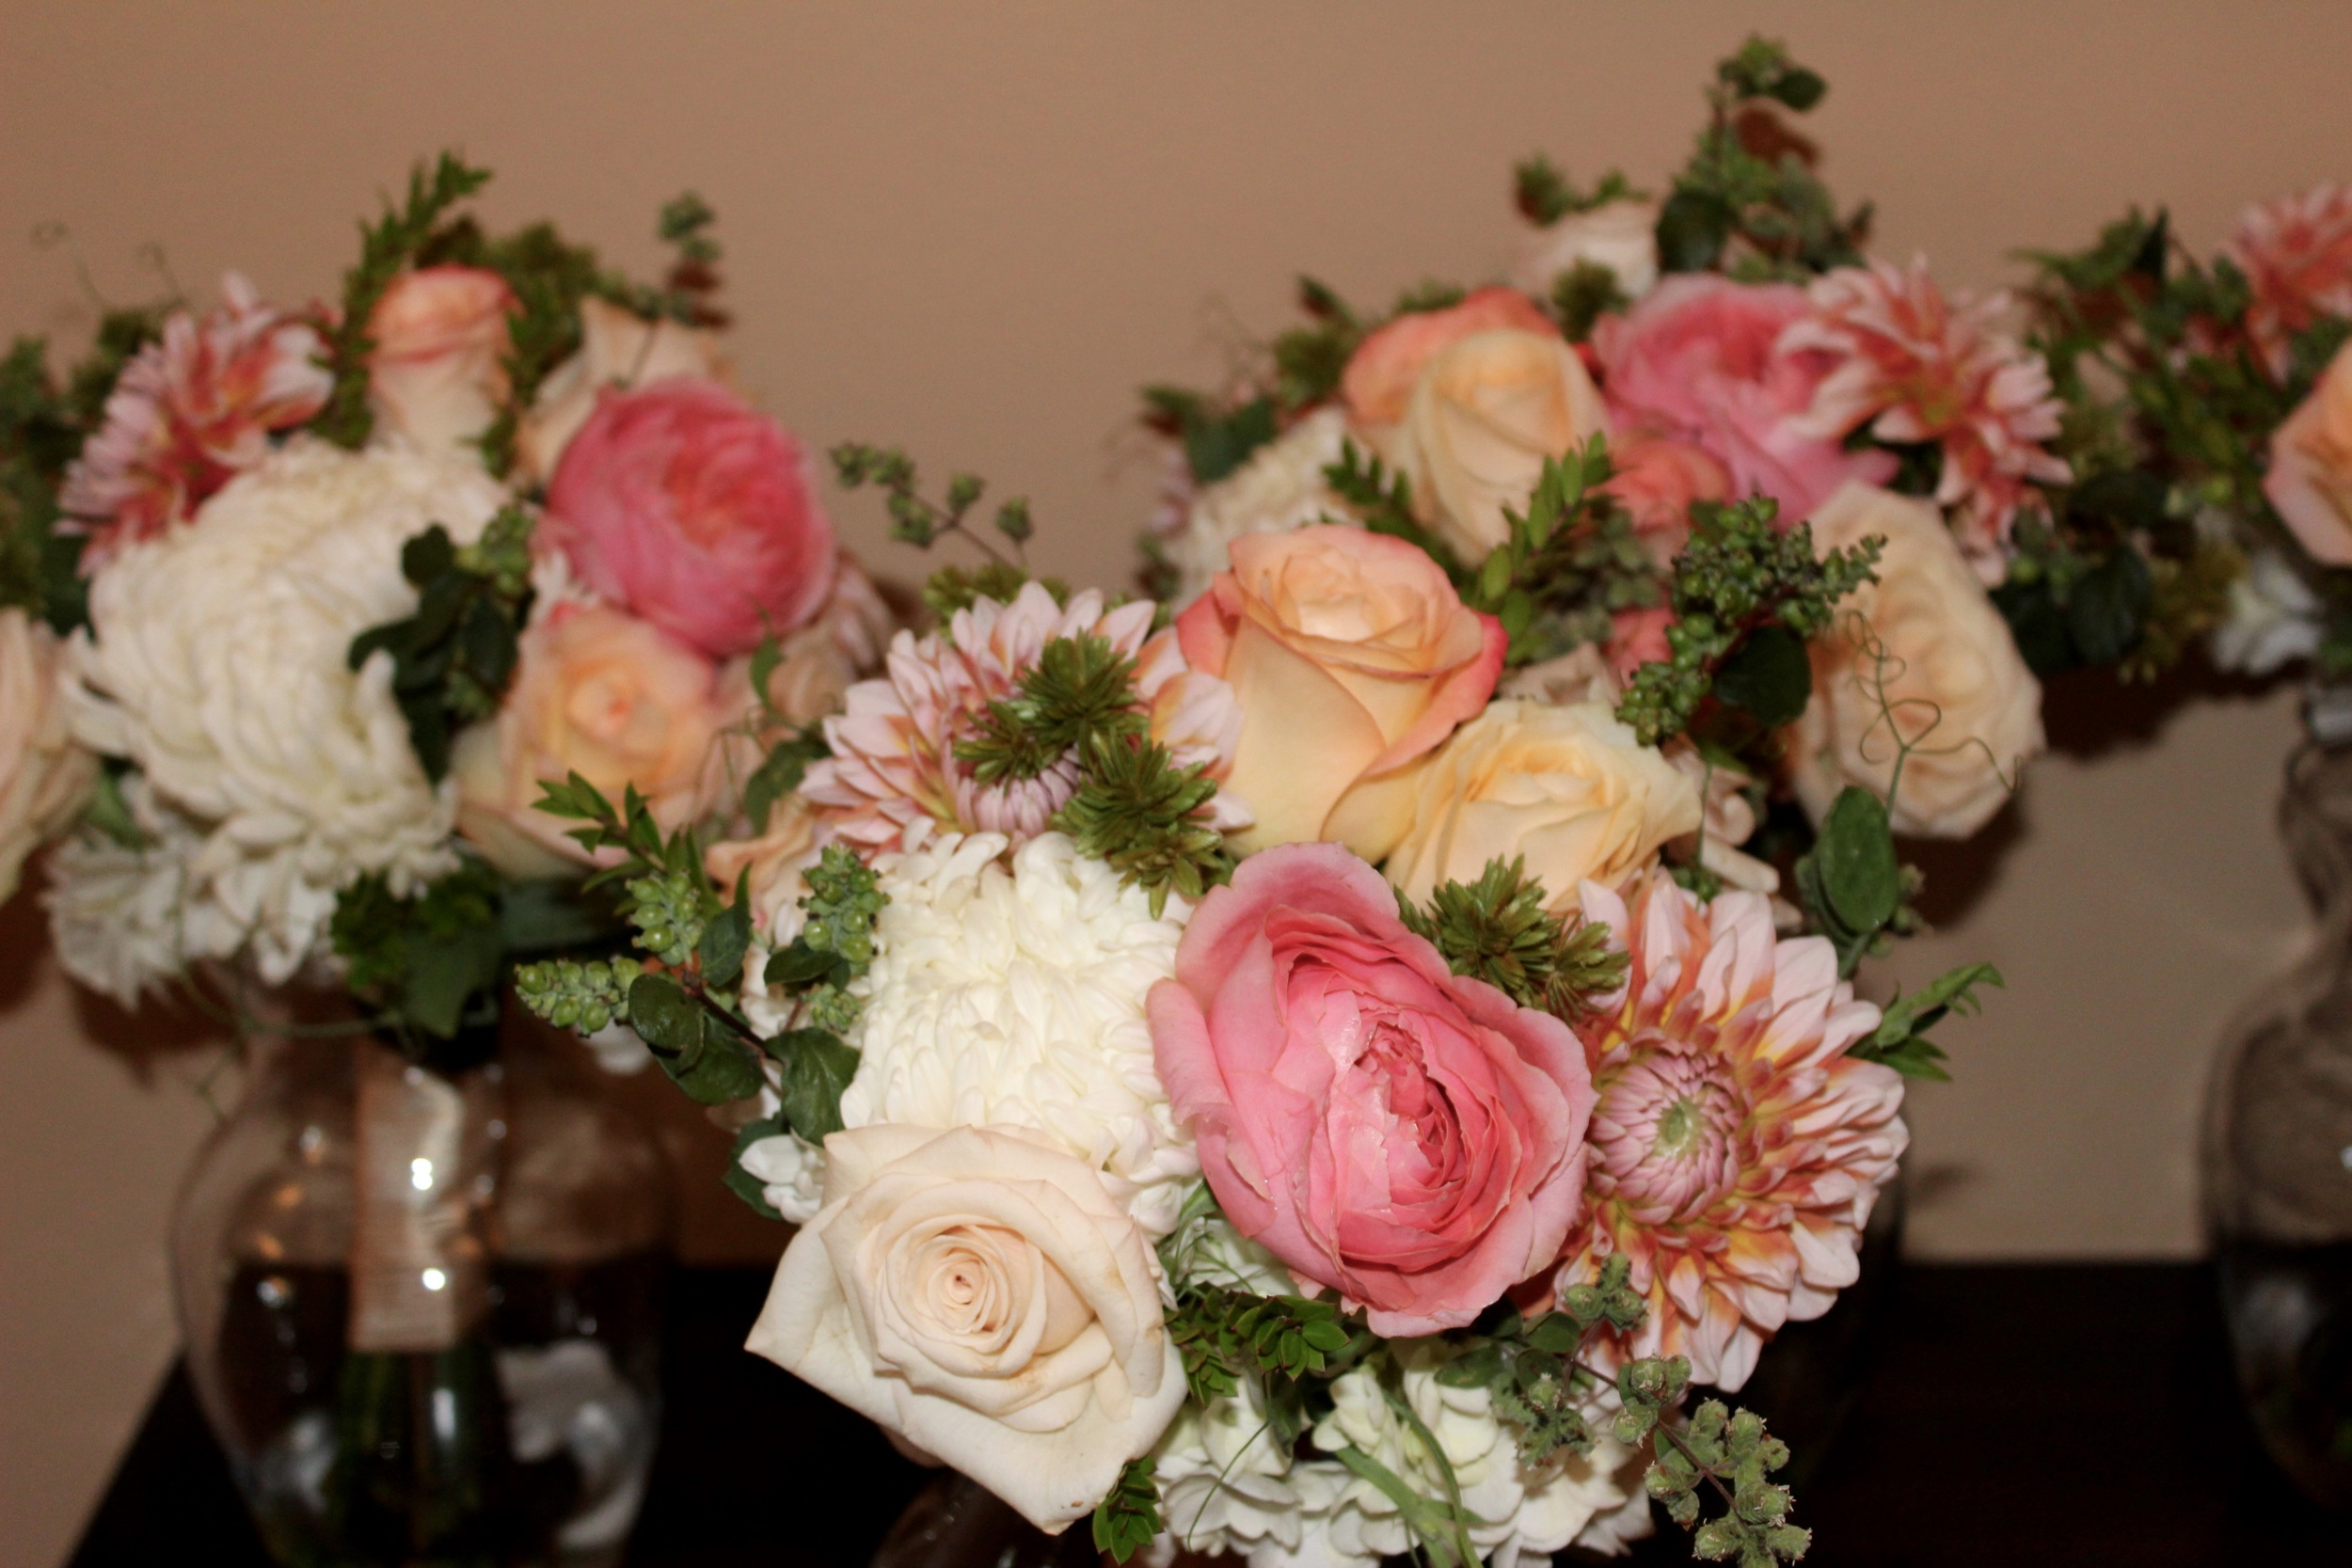 Gorg bouquets!